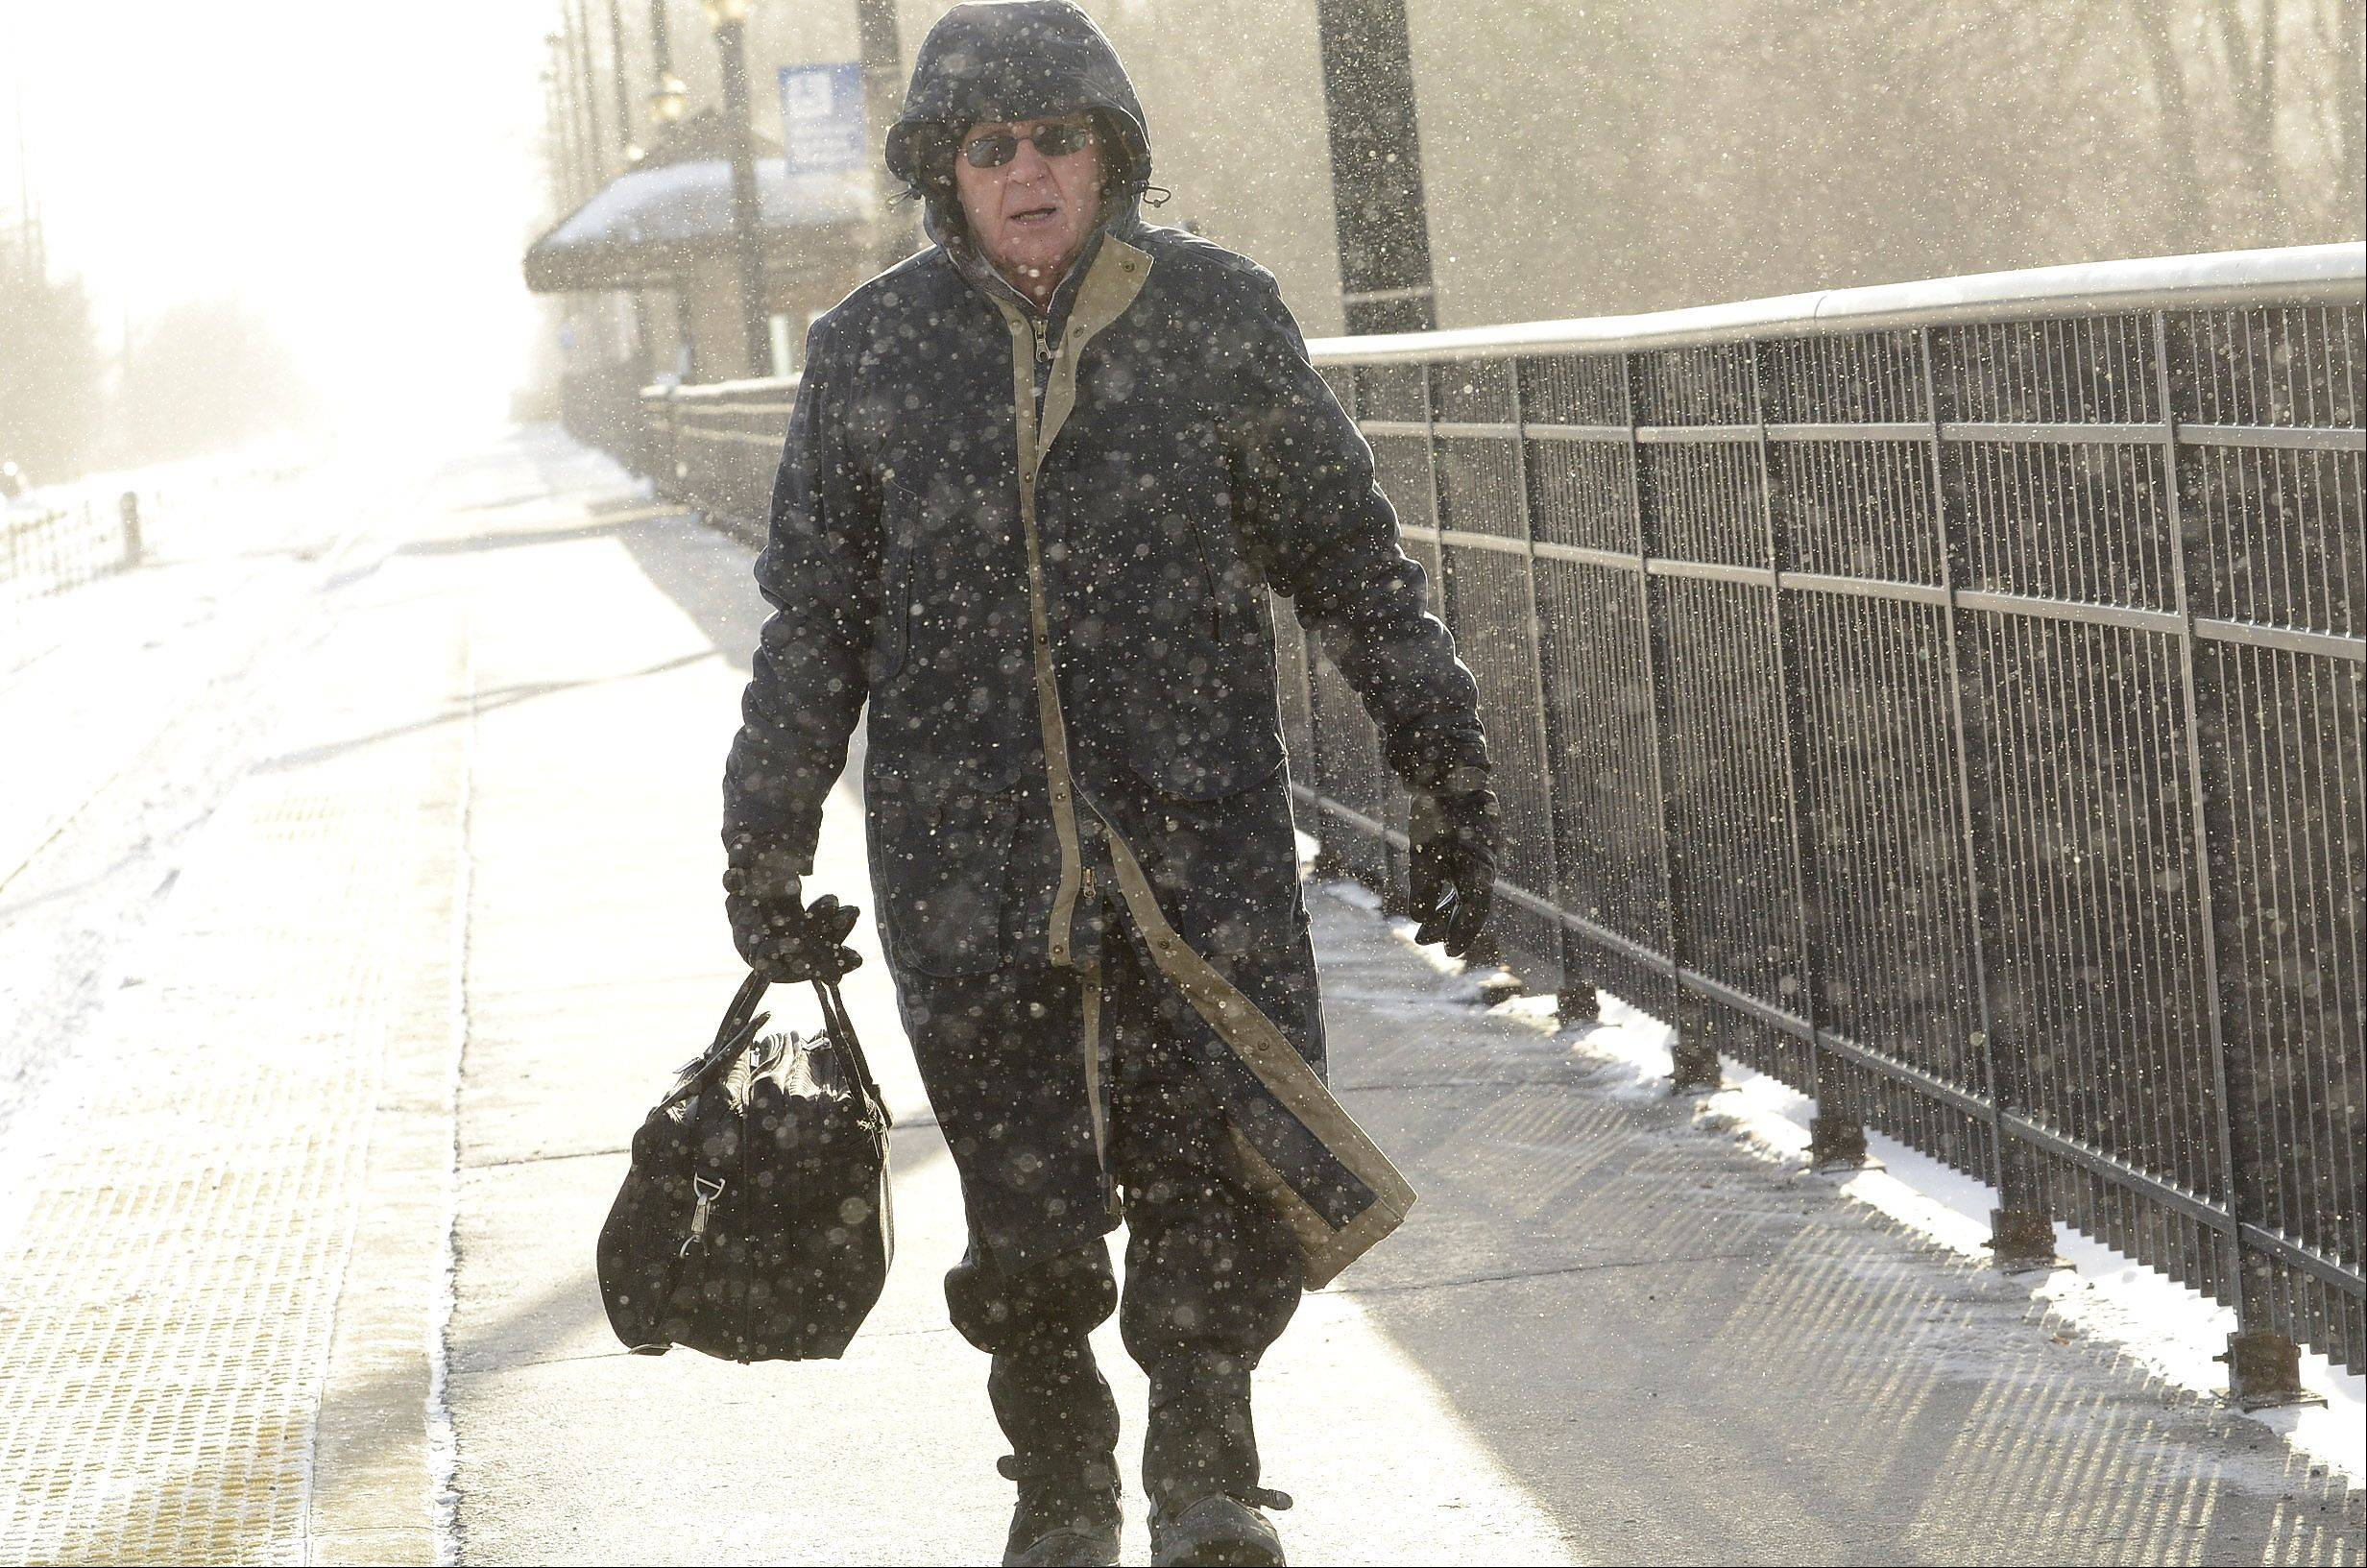 Alan Guernsey of Tower Lakes makes his way in the freezing cold to the Barrington Metra station train platform Thursday morning, on his way to his job in Chicago.